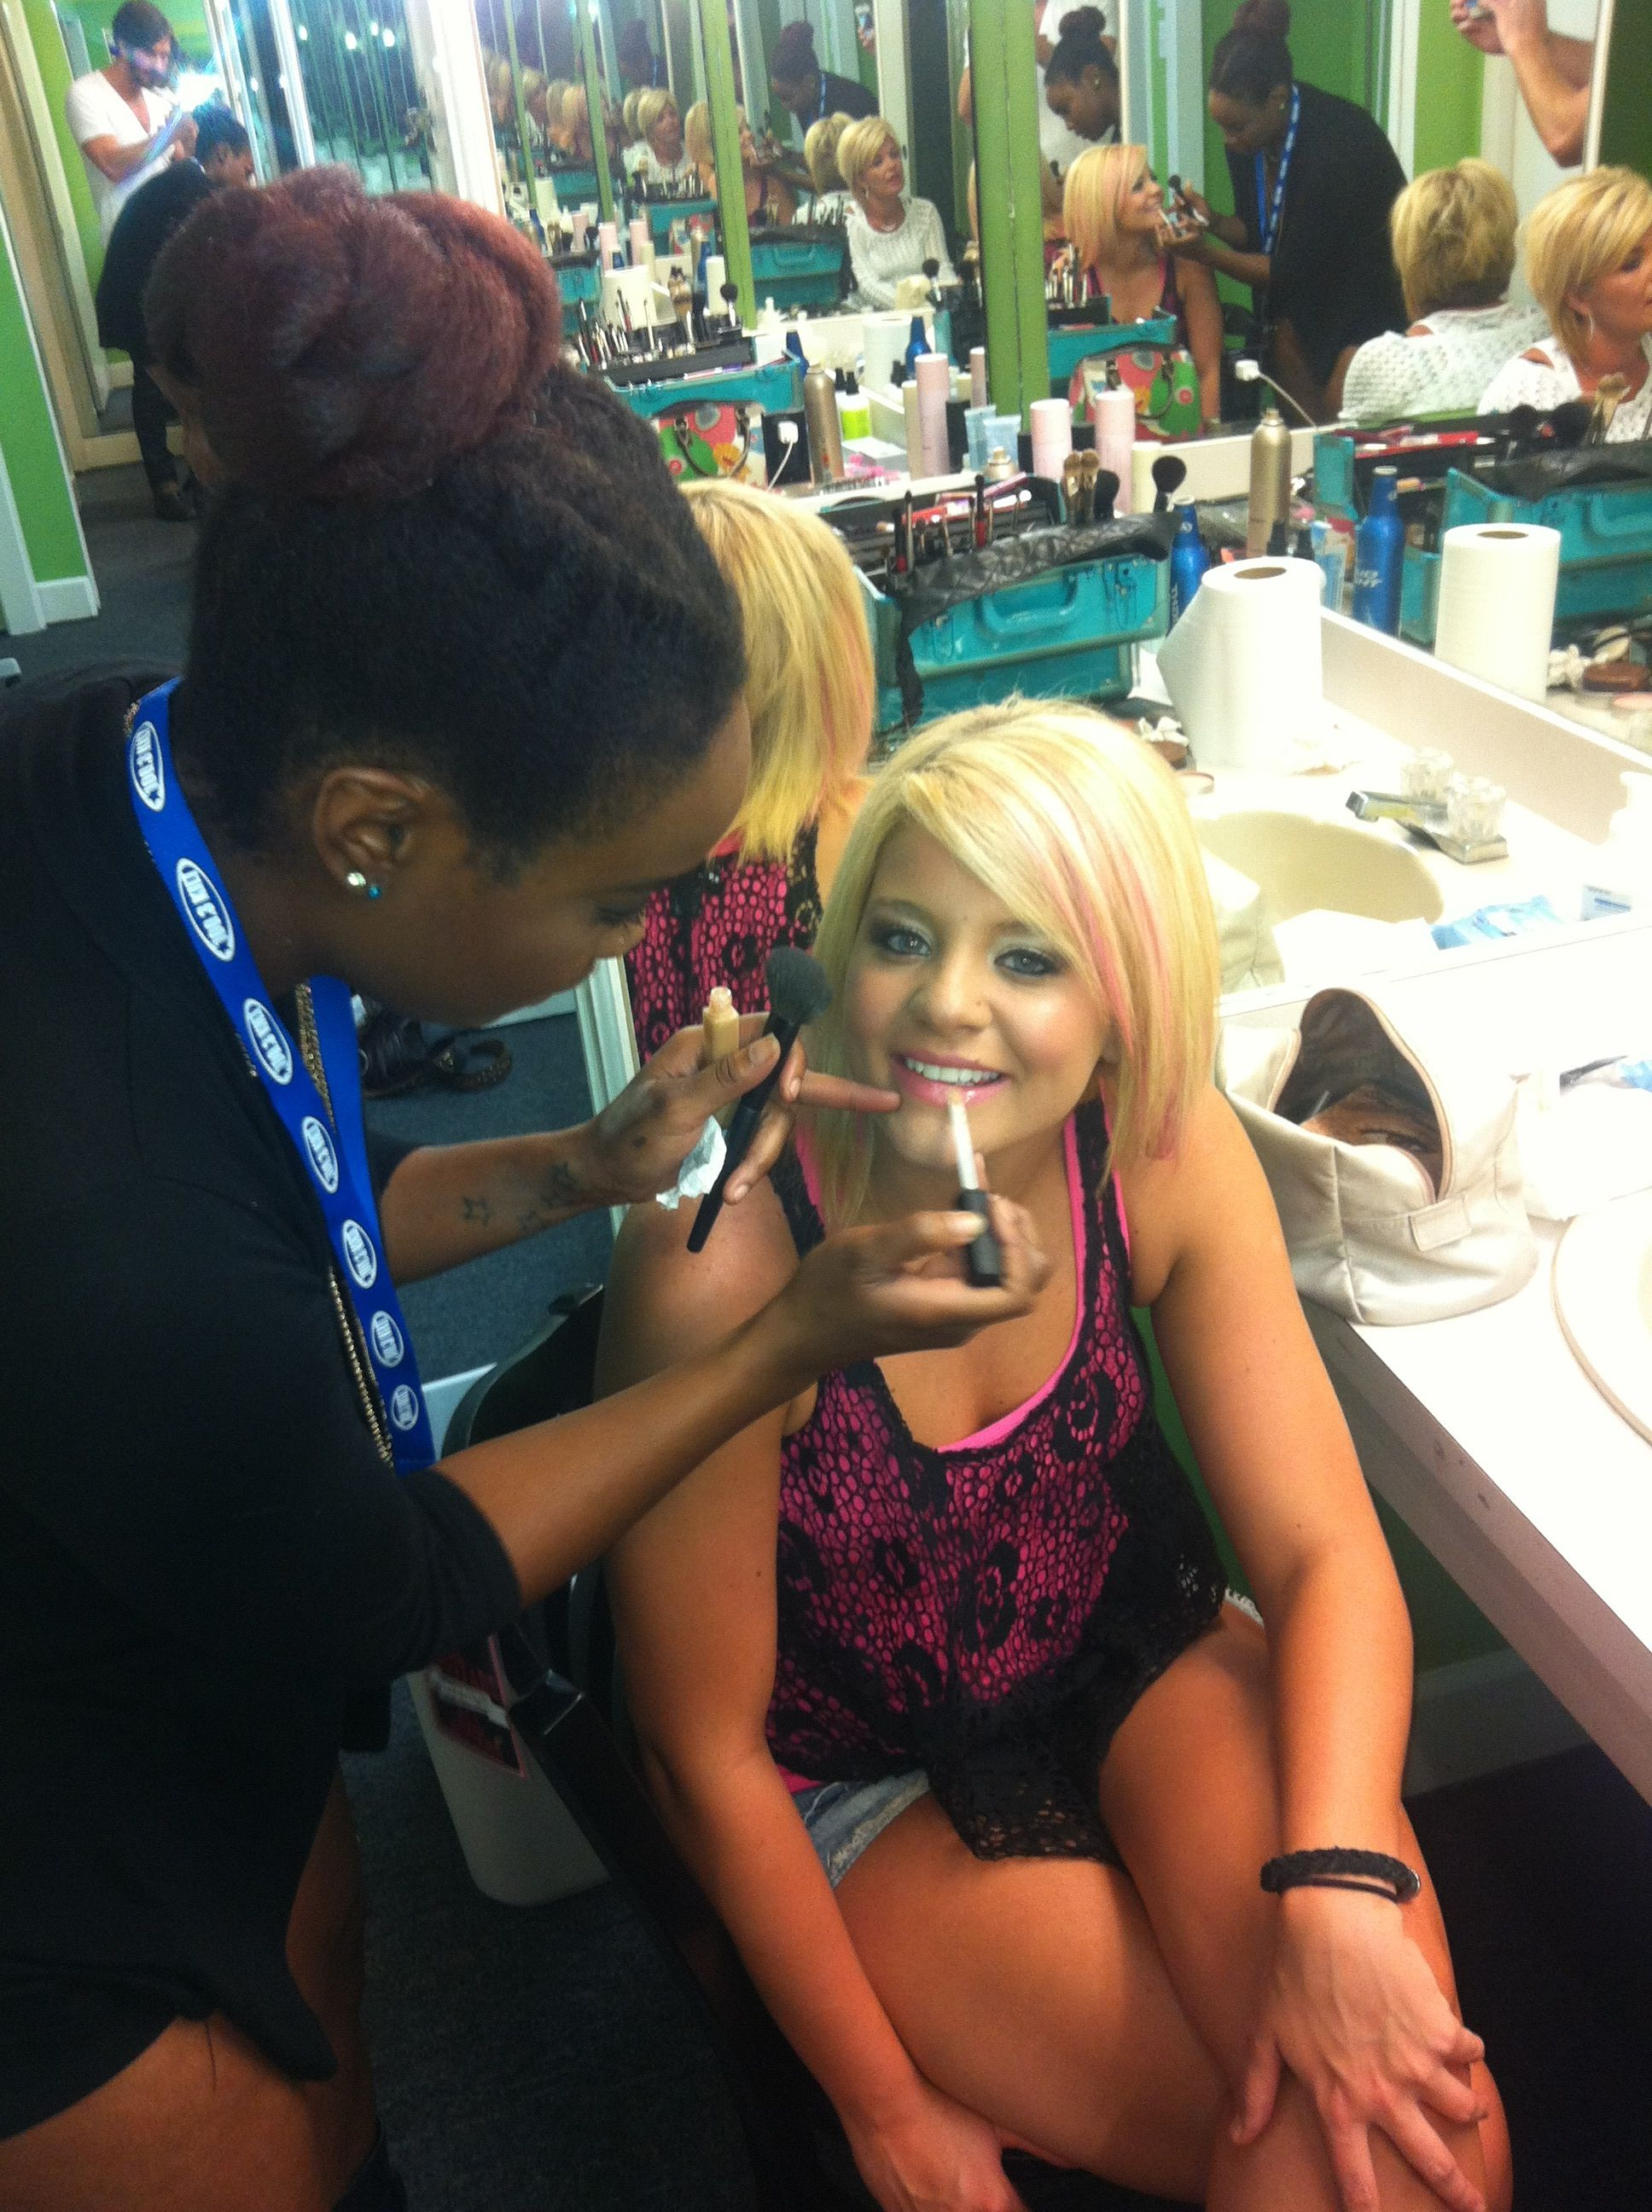 Eliy and Lauren Alaina (of American Idol fame) in July 2012 at Girls With Guitars event in Houston